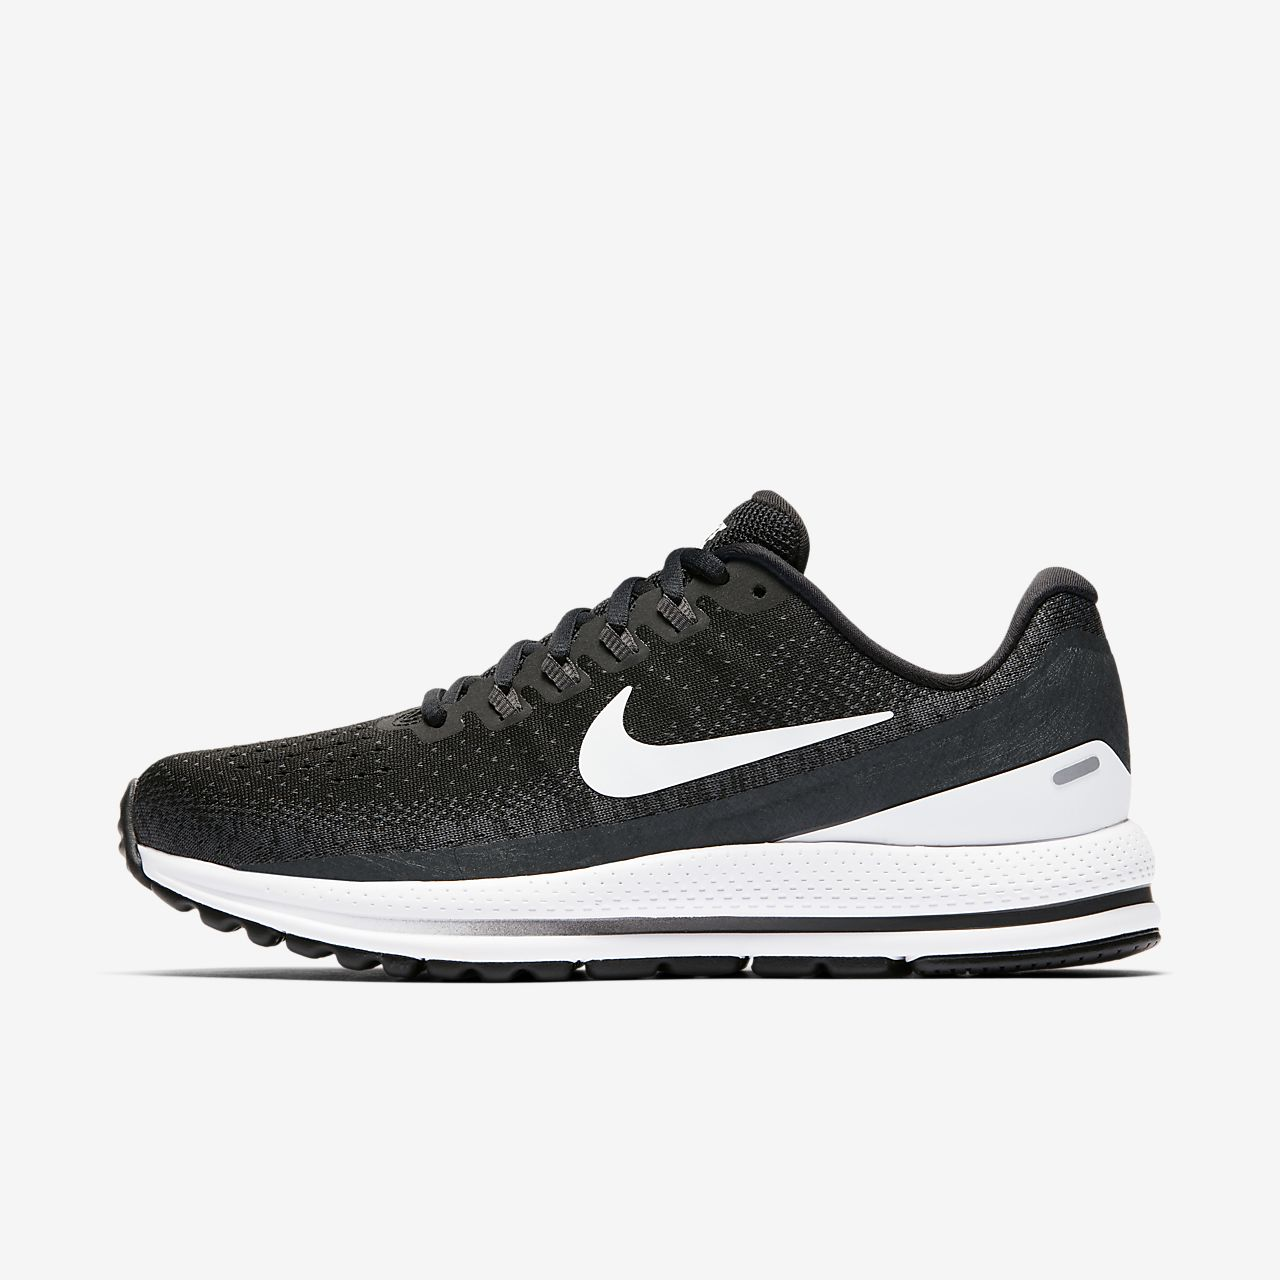 Nike Air Zoom Vomero 13 Women's Running Shoes Black/White pX4158X